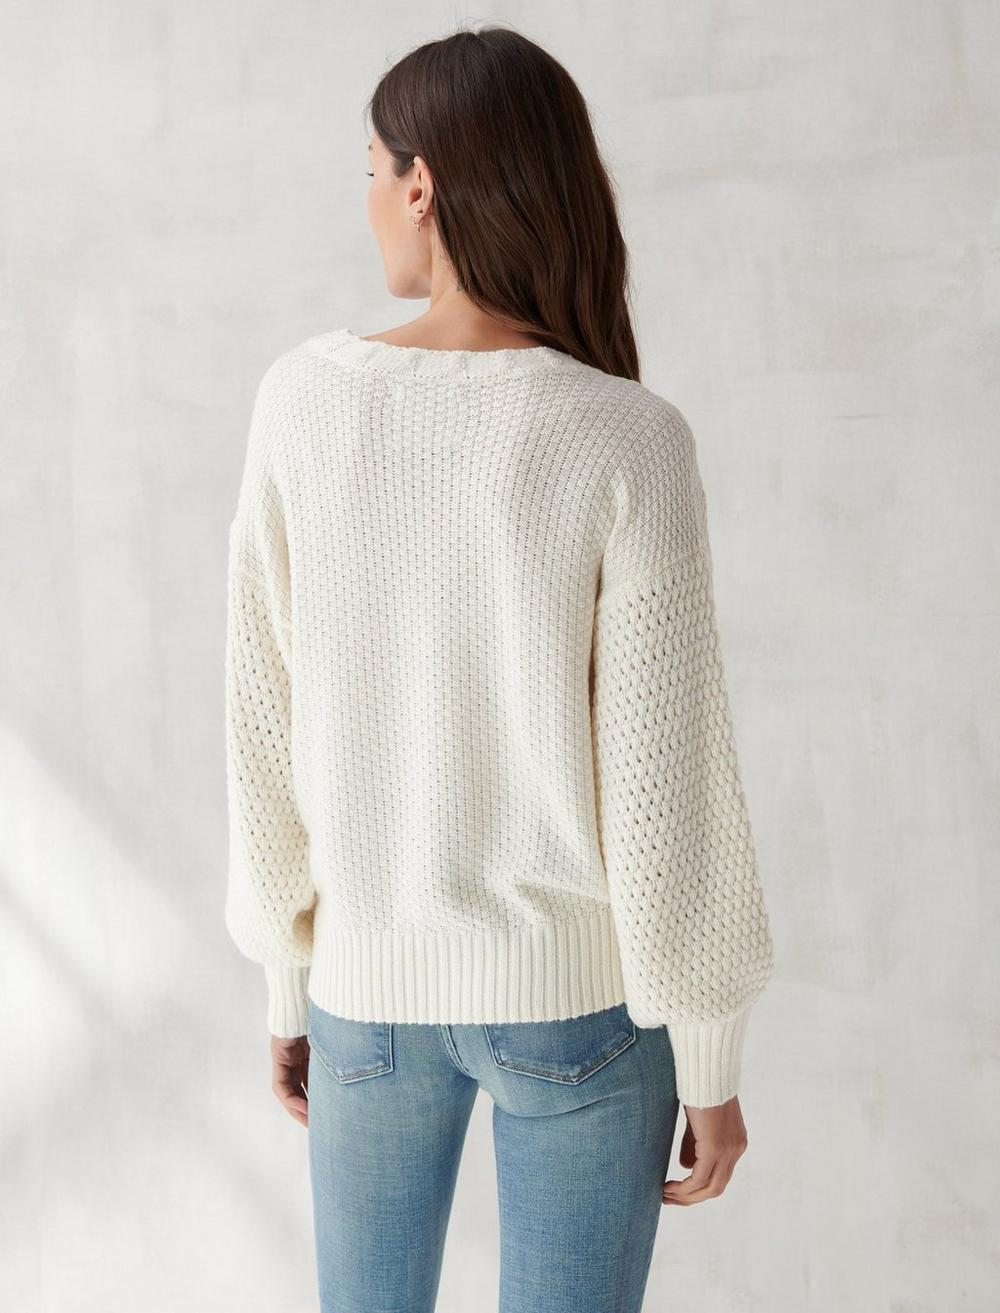 EMBROIDERED NOTCH NECK SWEATER, image 4